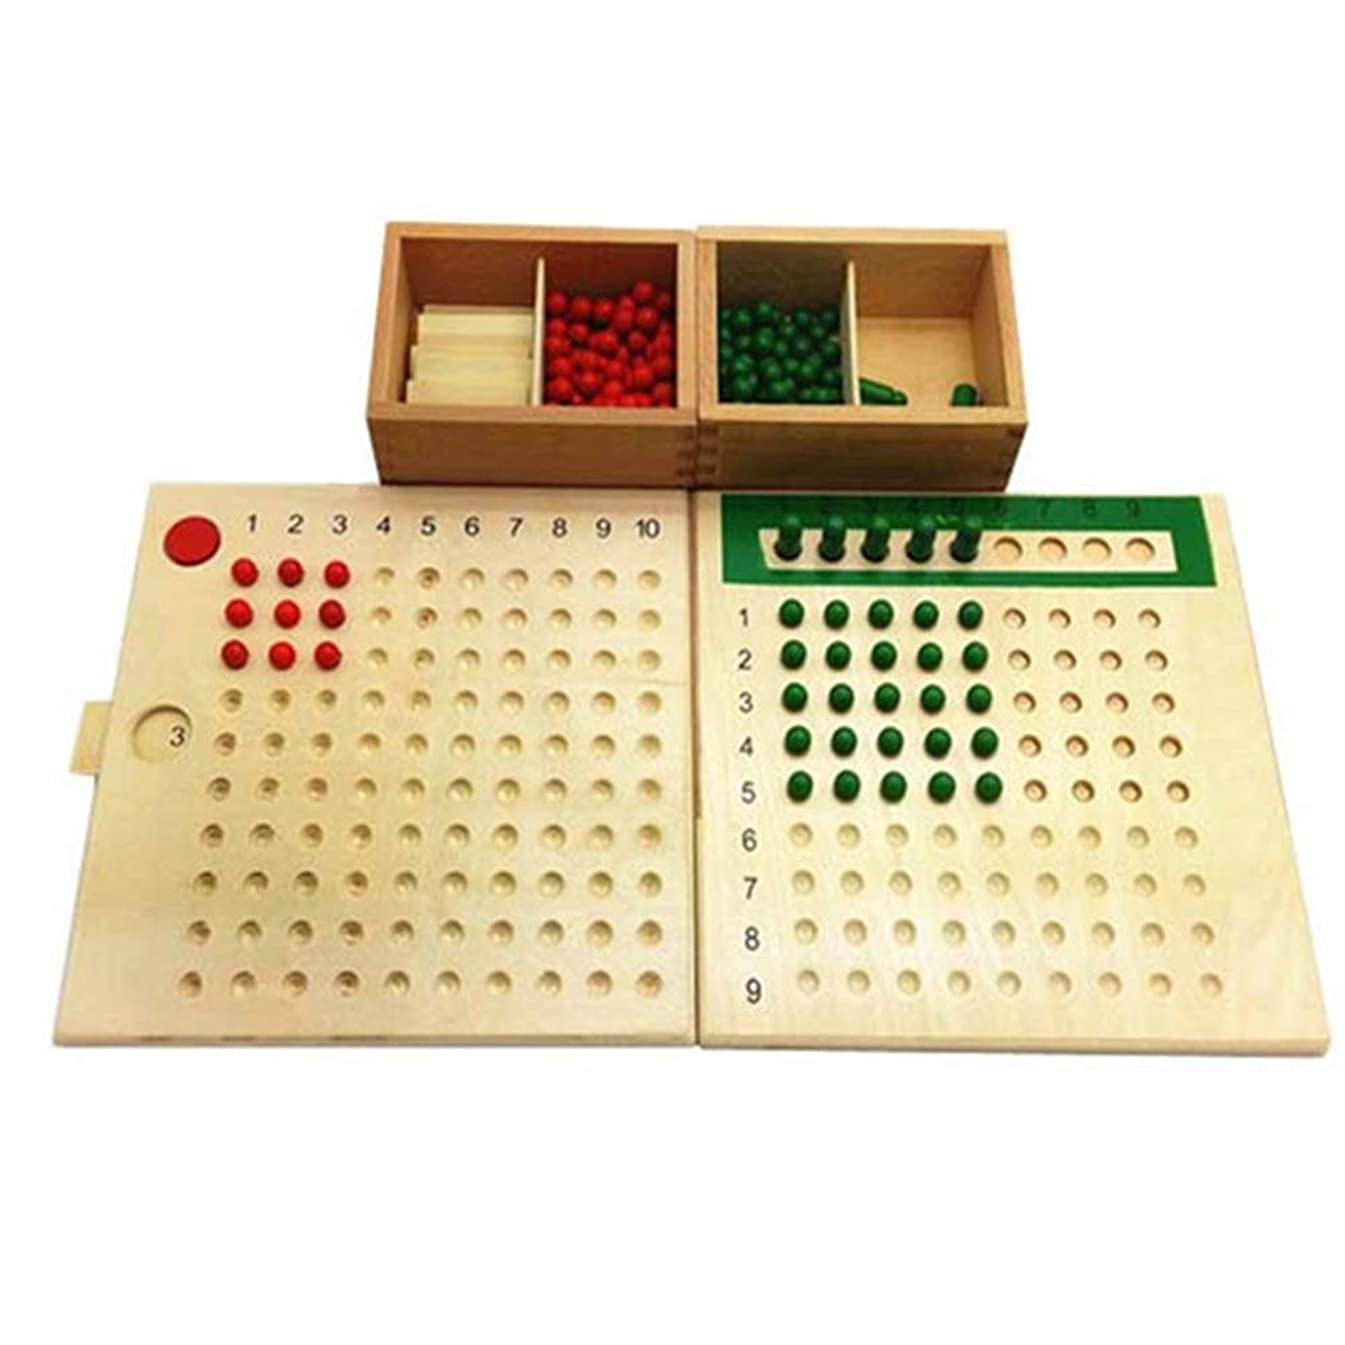 Braceus Wooden Montessori Materials Mathematics Teaching Toys Multiplication & Division Math Toy Beads Board Red Green Early Learning Toy